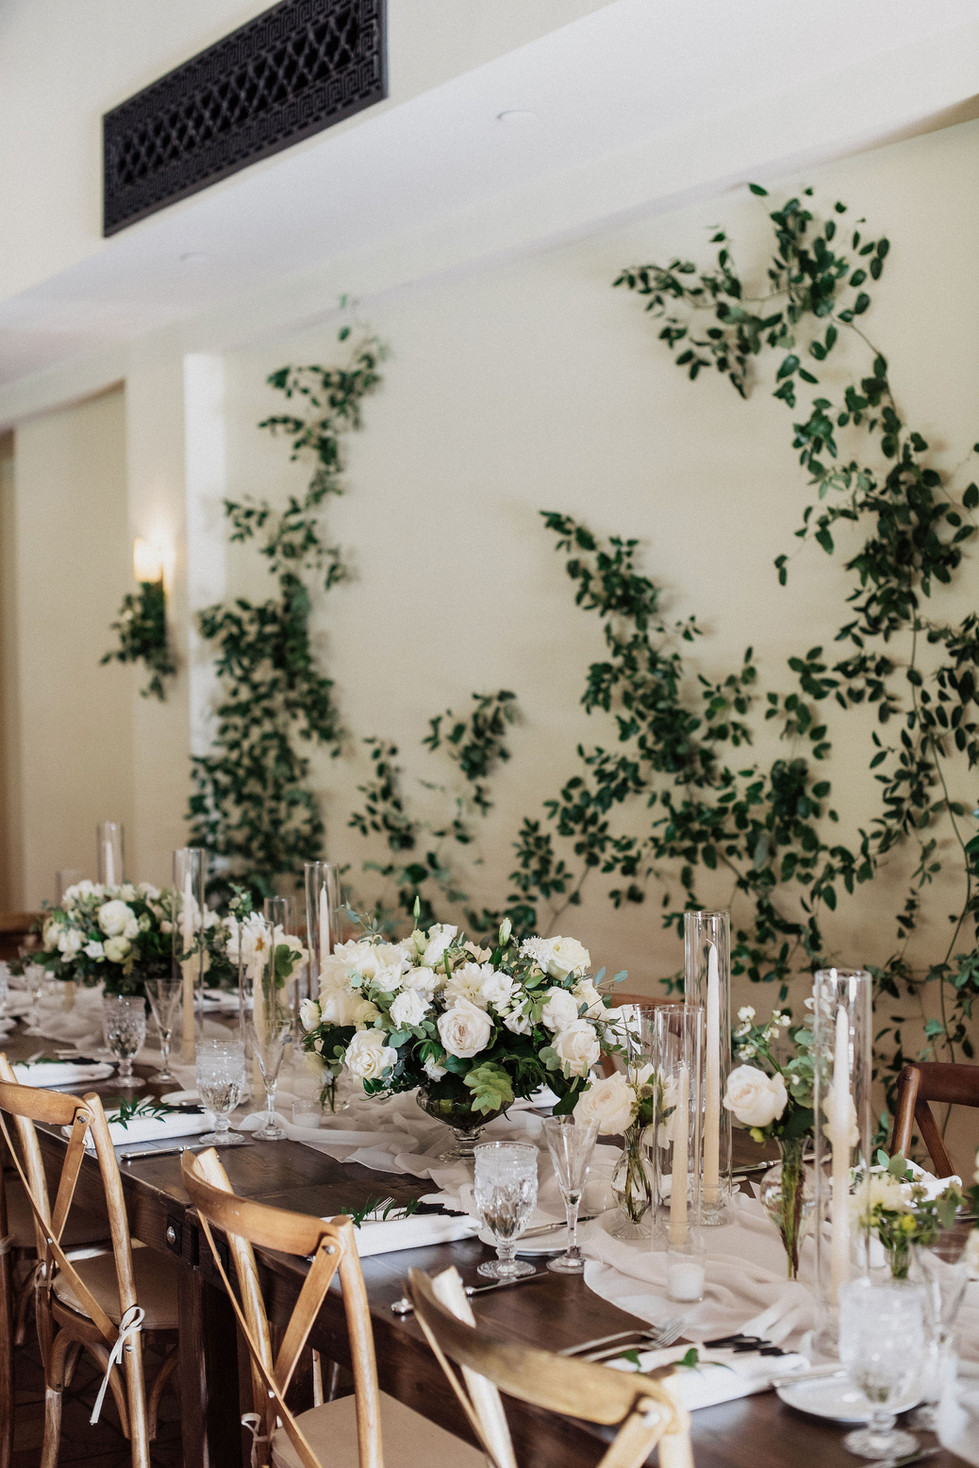 White and ivory centerpieces with greenery vines crawling up the walls. Photo: Eden Strider